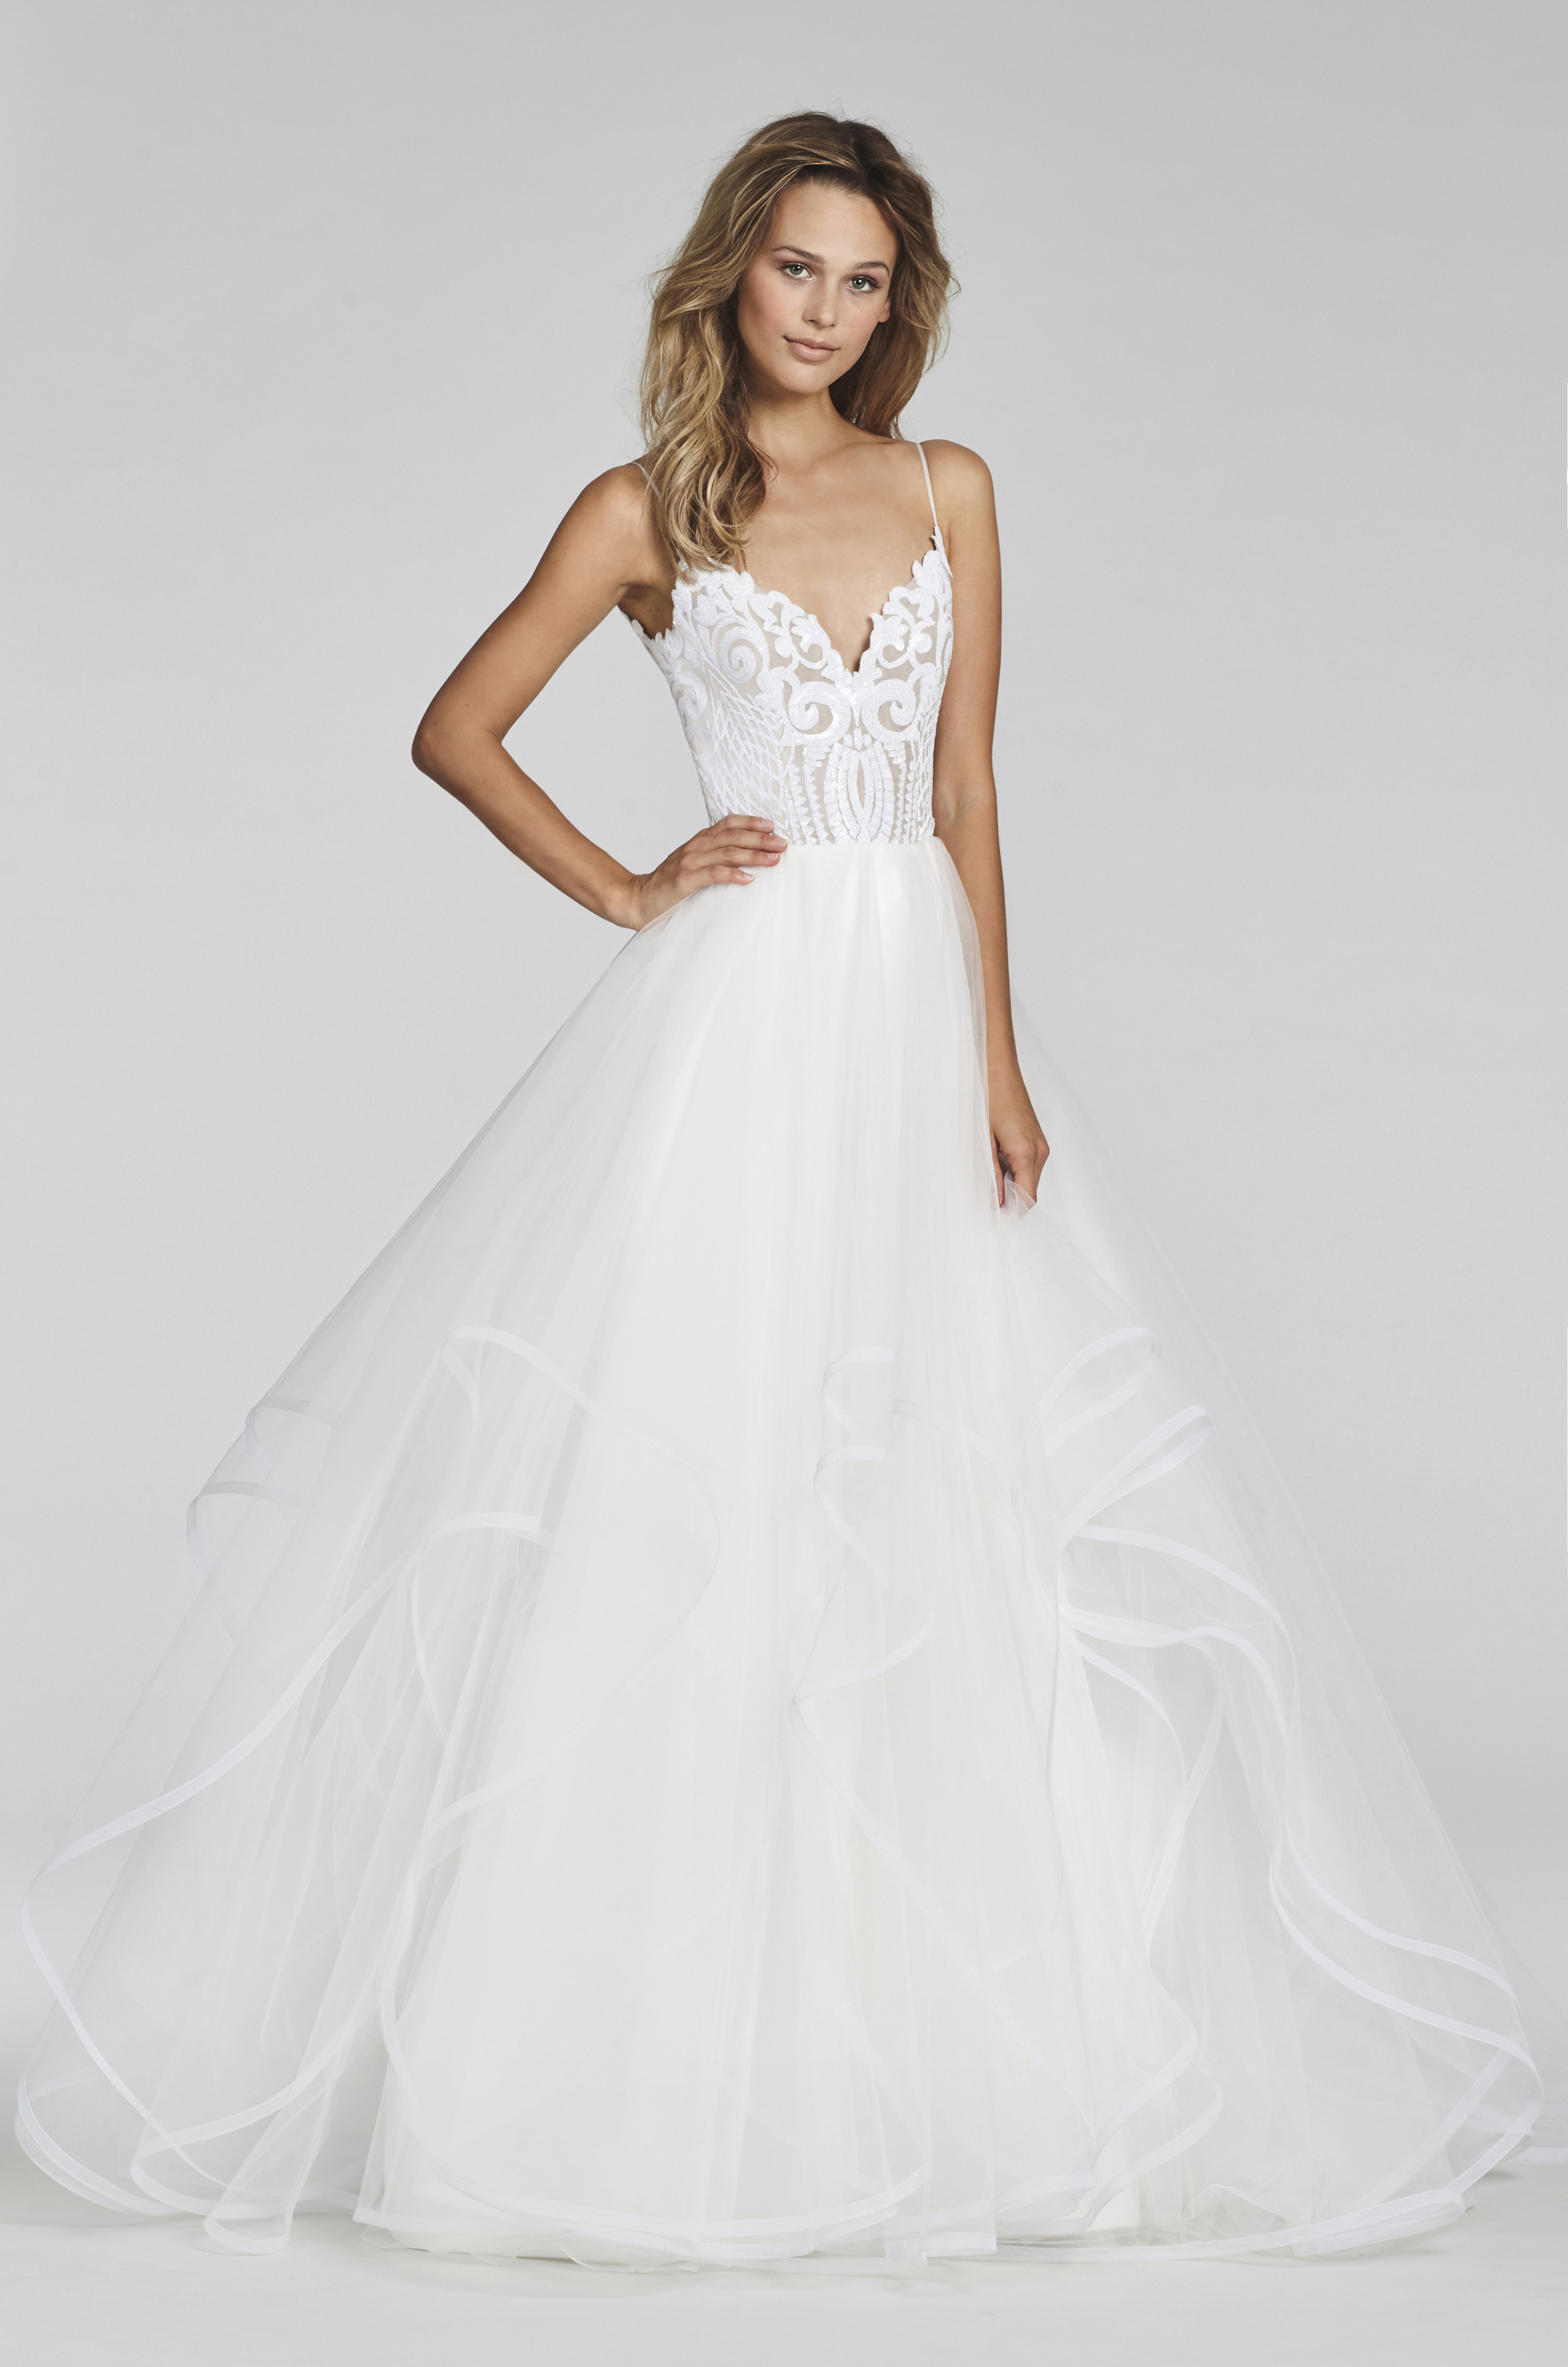 BLUSH by Hayley Paige   Kleinfeld Bridal